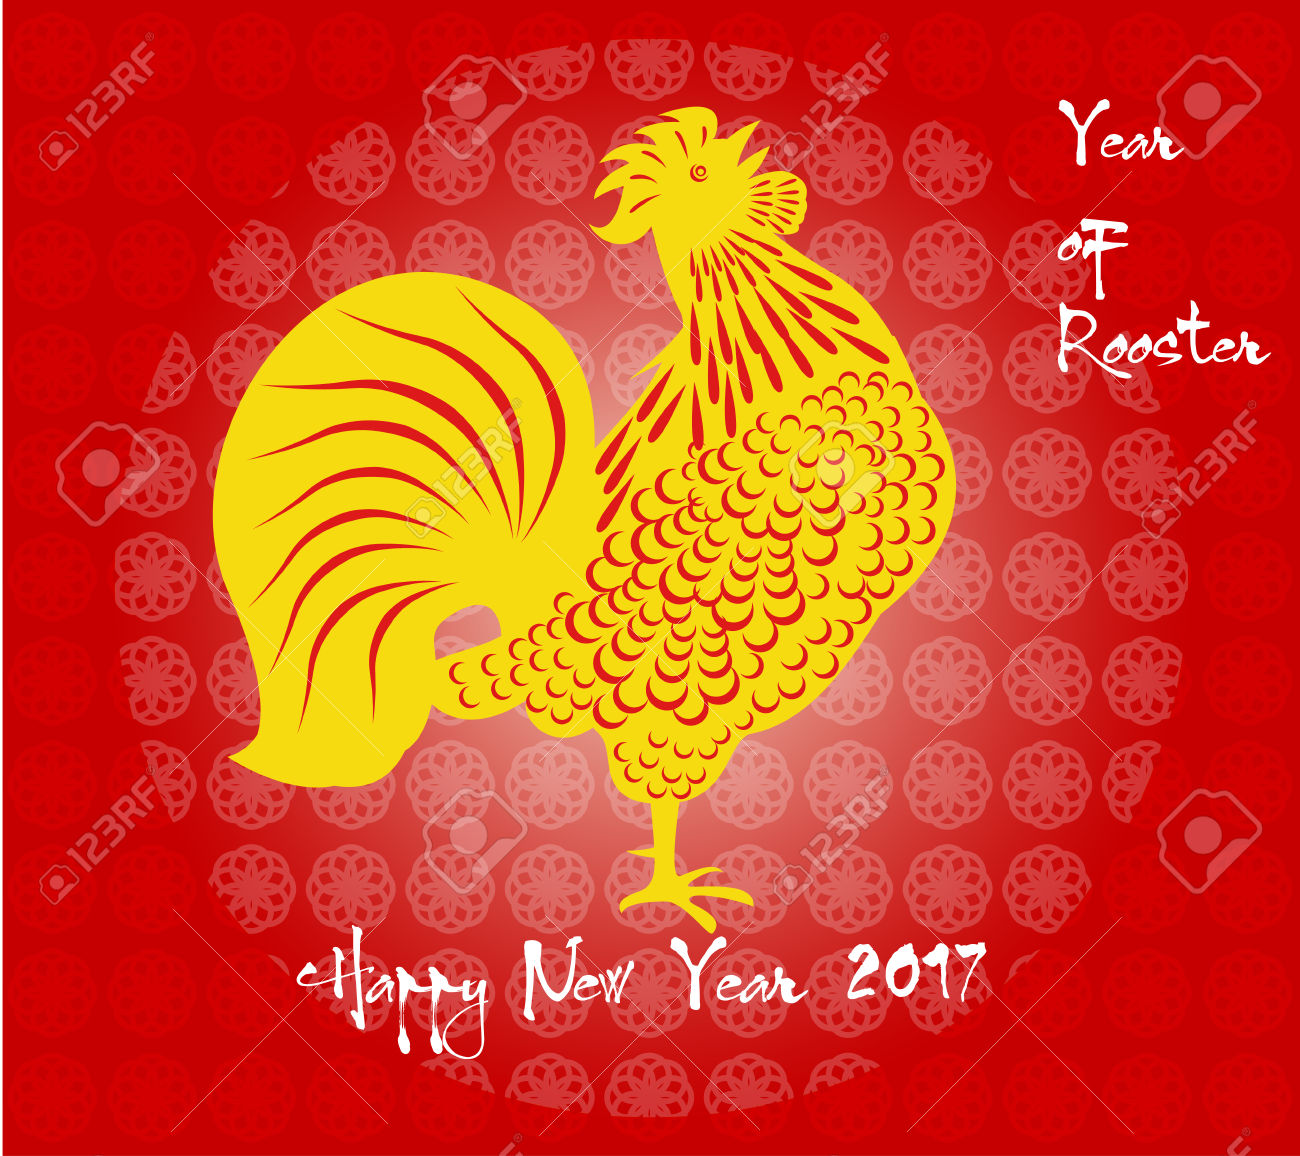 Gong Xi Fa Cai …… Happy Chinese New Year to all our customers and friends. CNY falls on 28 January 2017.